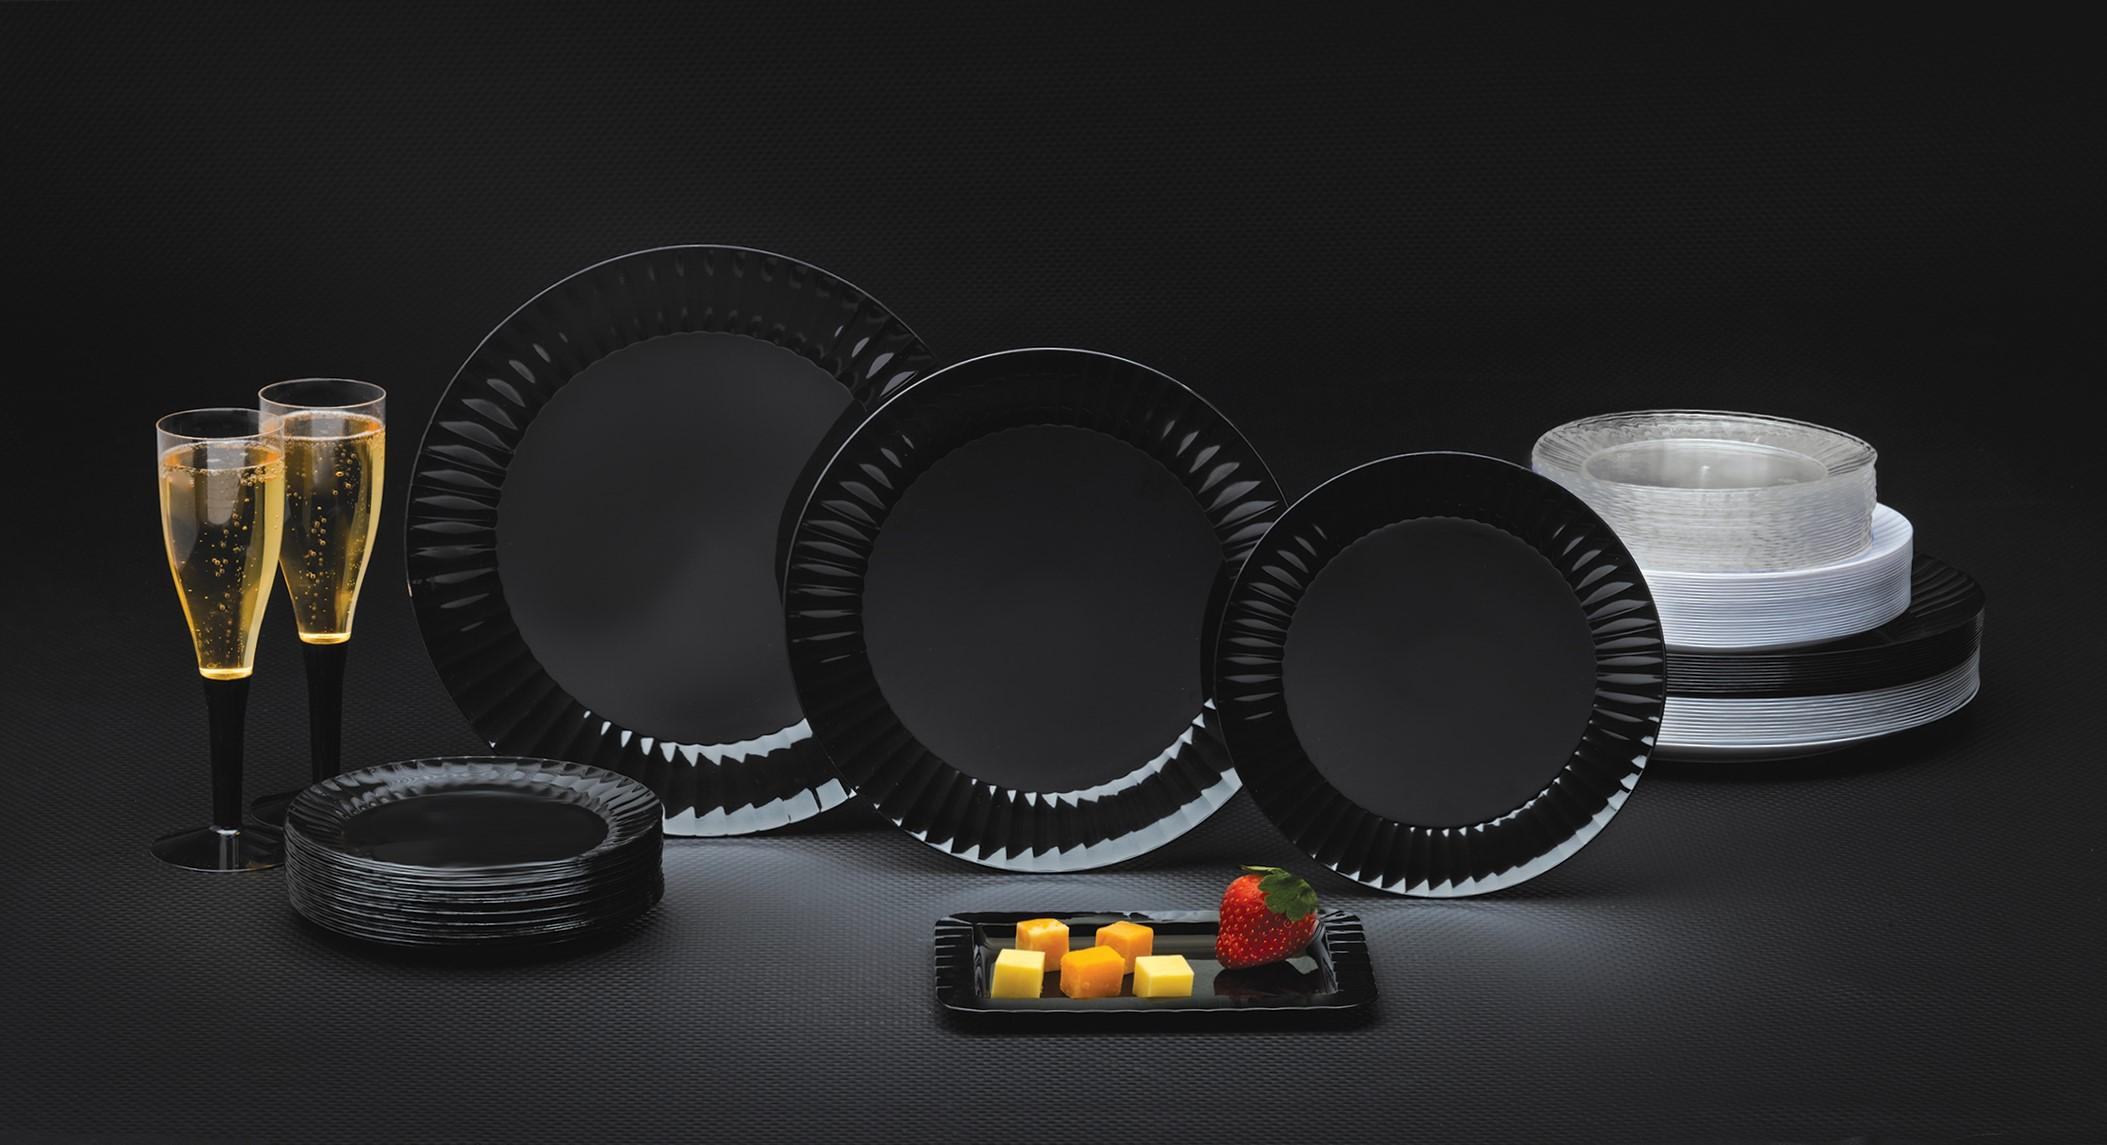 Memorable Party Table Begins with Deluxe Quality Plates from Party